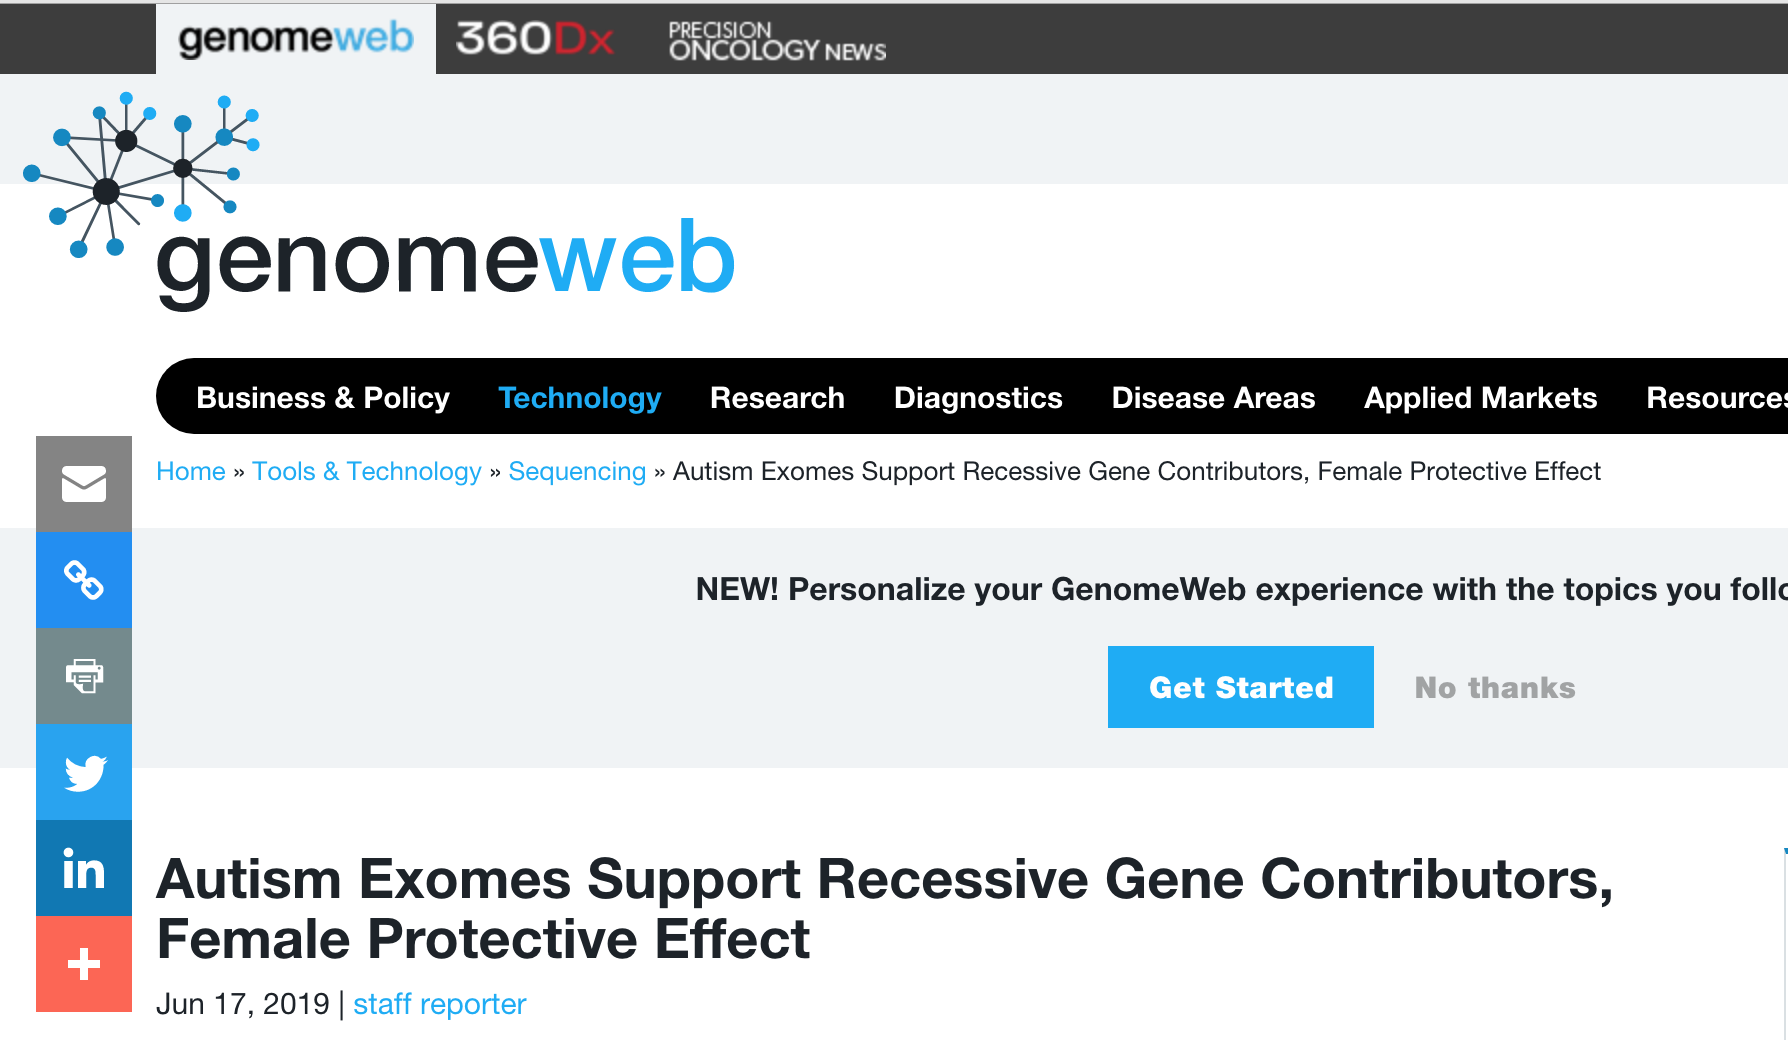 genomeweb - June 17, 2019